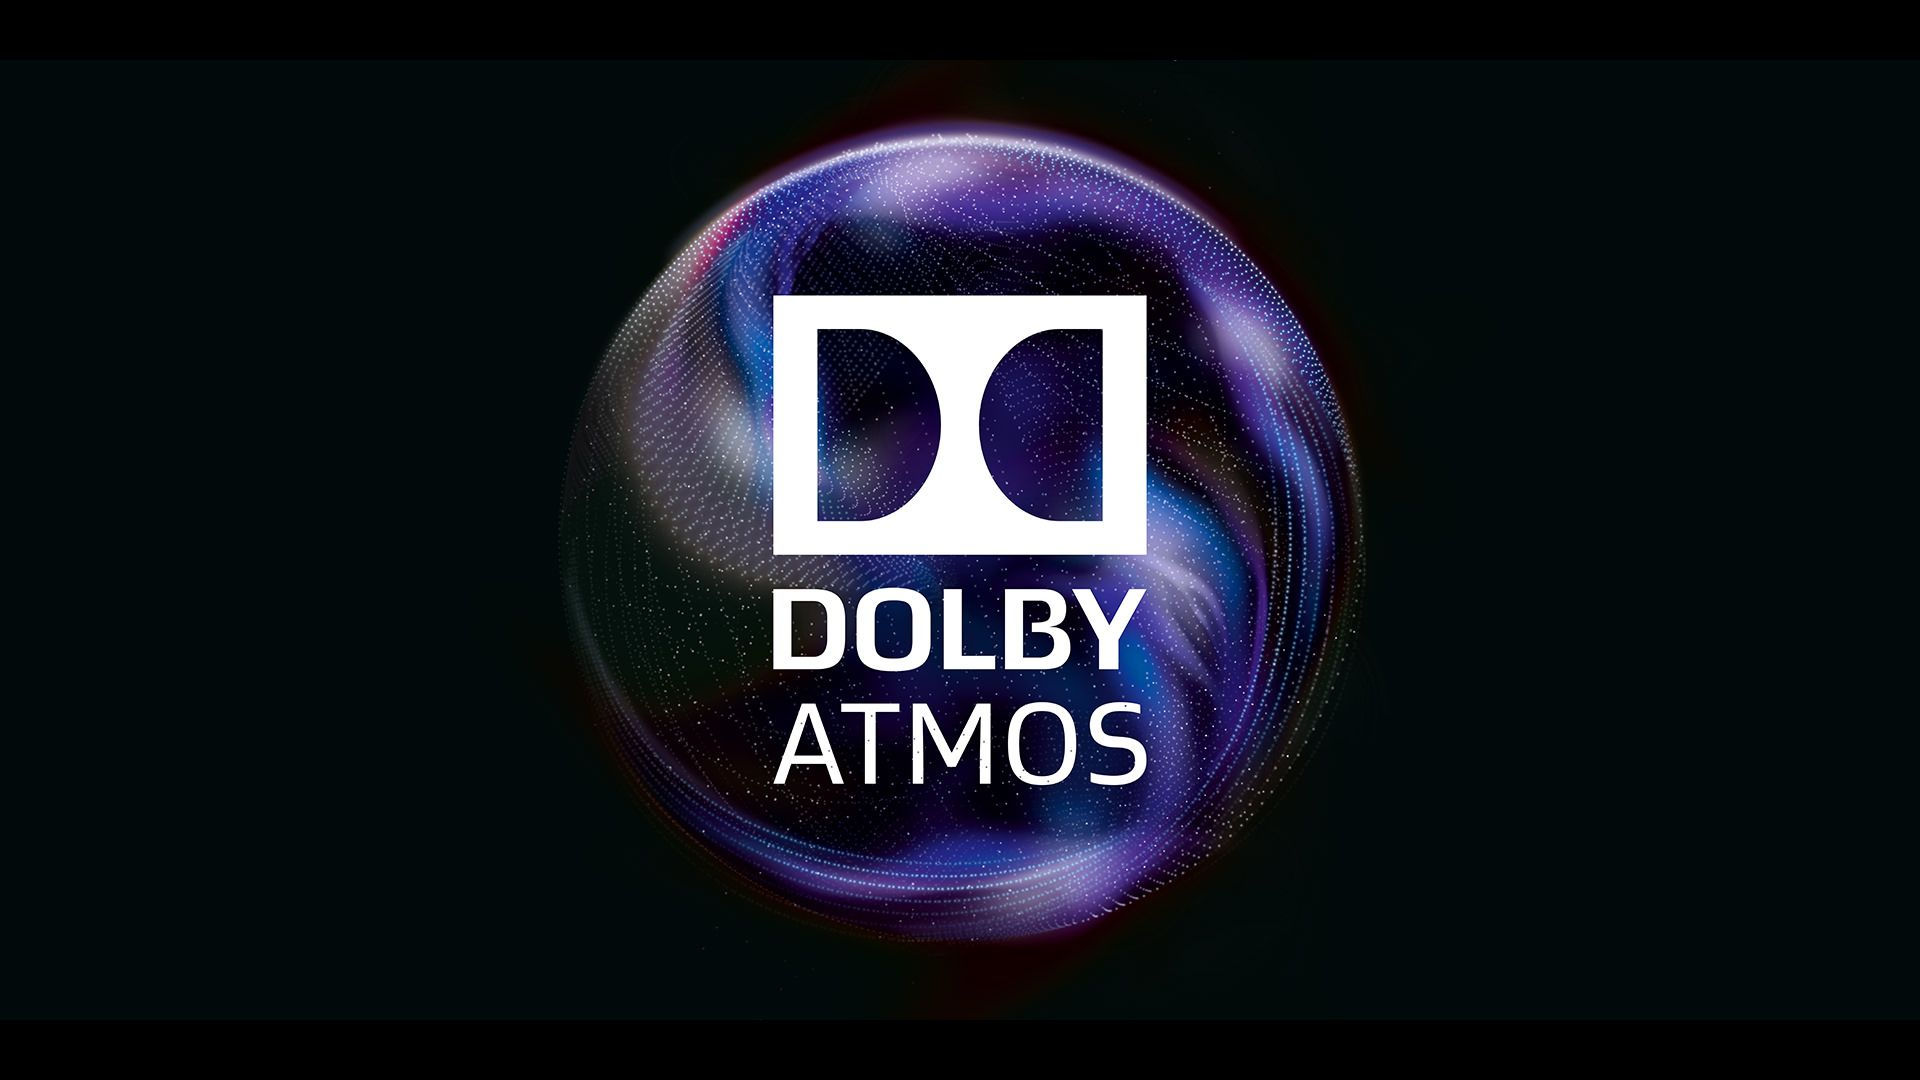 Graphic Illustrations For Dolby Atmos Graphic Art Radim Malinic Dolby Atmos Atmos Web Design London